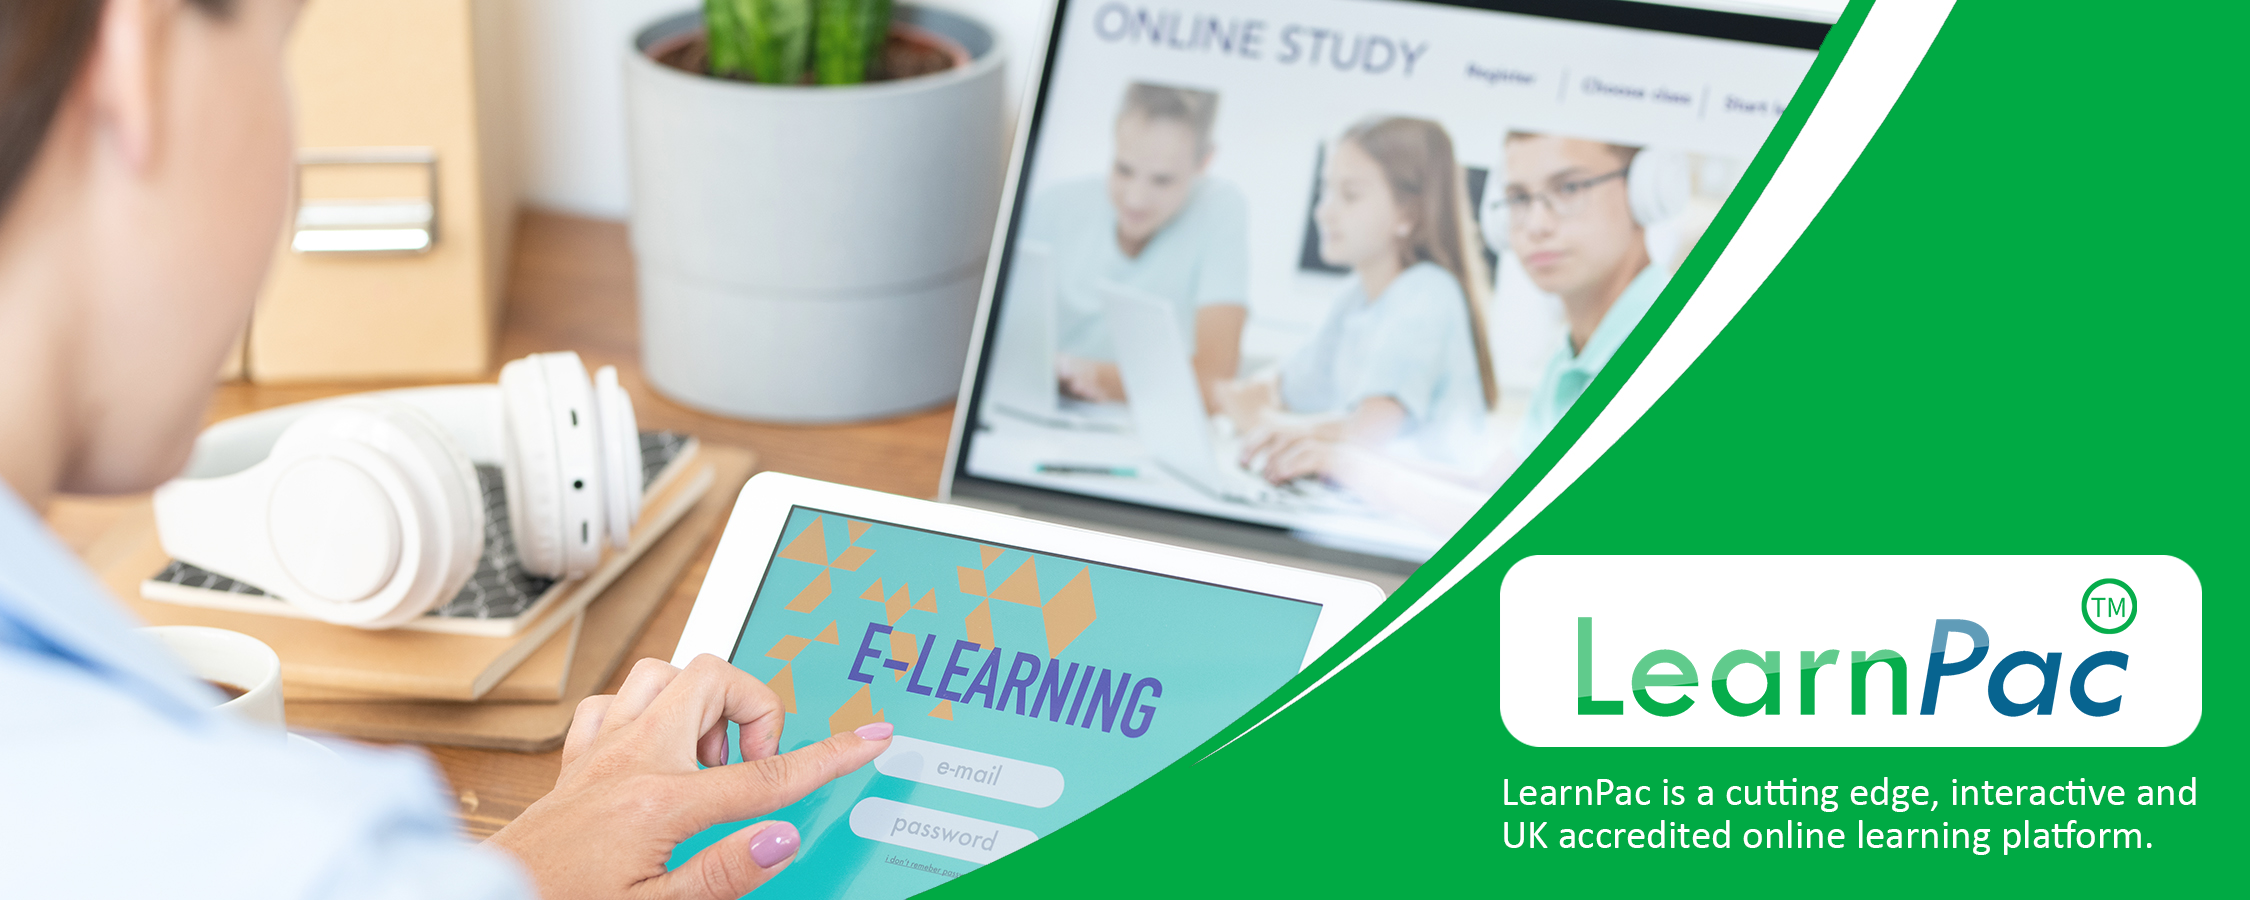 Equality, Diversity and Human Rights - Online Learning Courses - E-Learning Courses - LearnPac Systems UK -